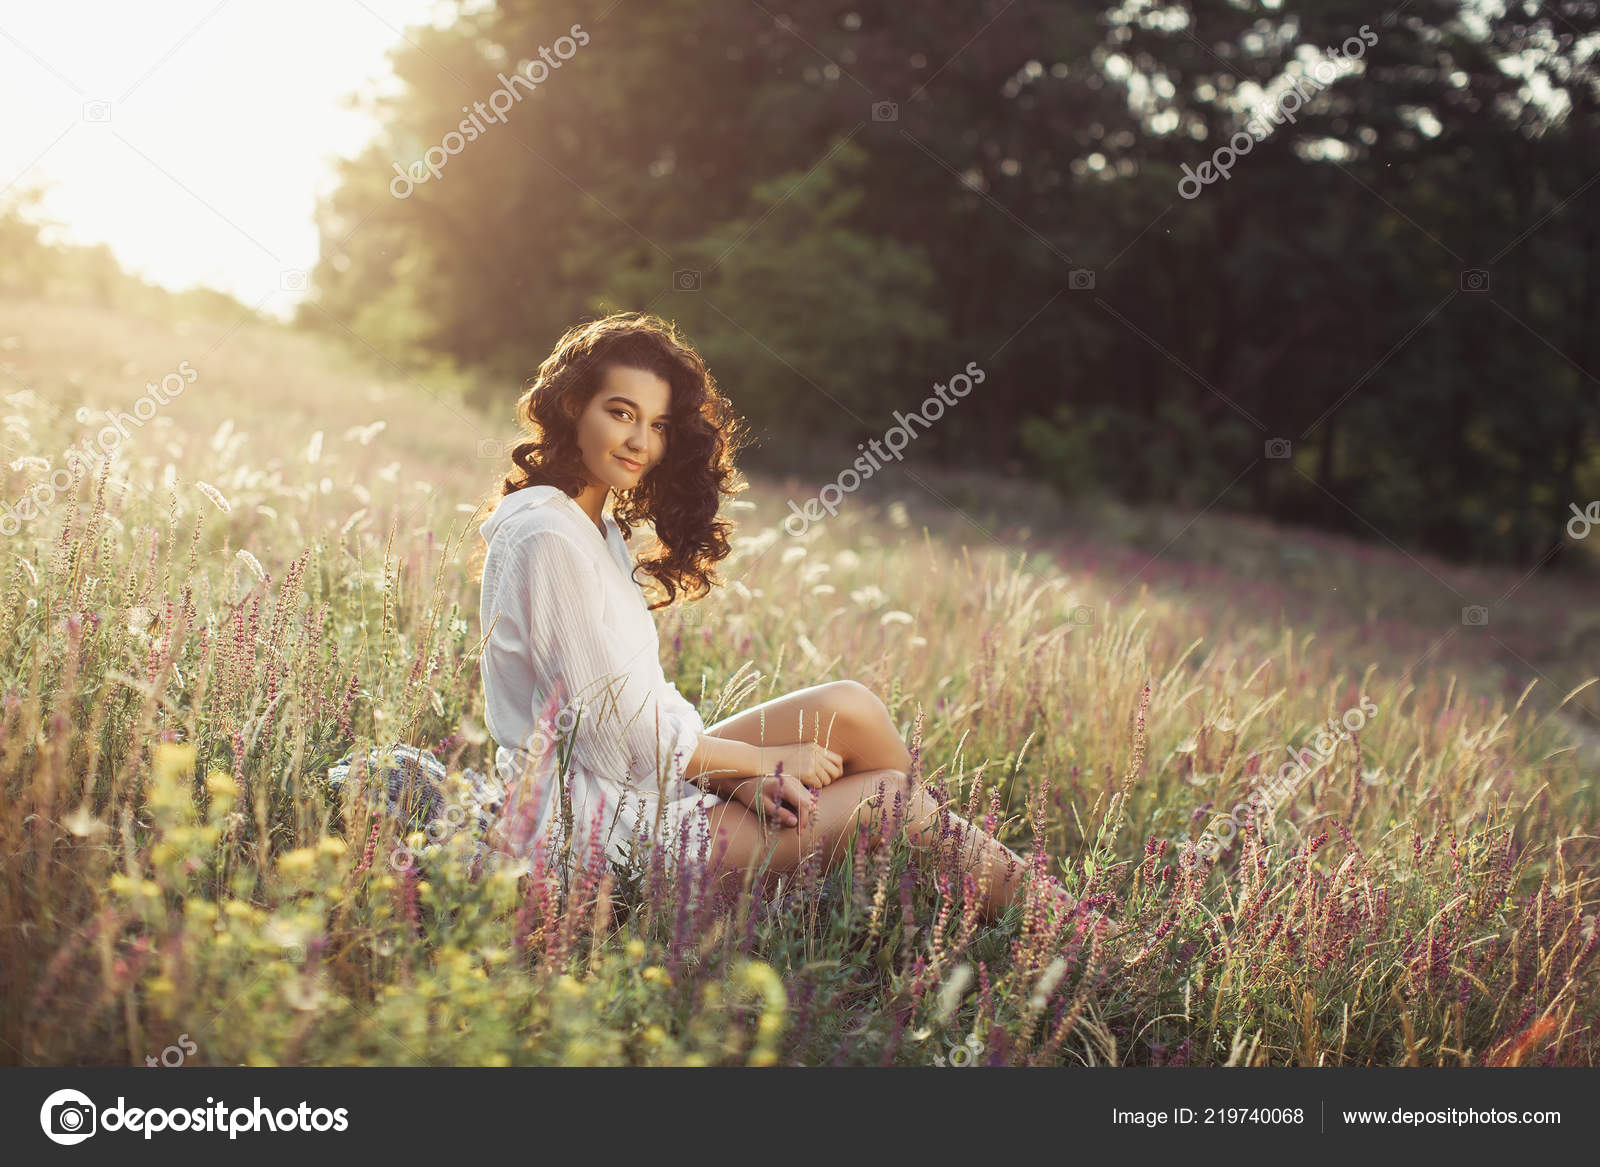 Free Happy Woman Enjoying Nature Beauty Girl Outdoor Freedom Concept Stock Photo C Dimabl 219740068